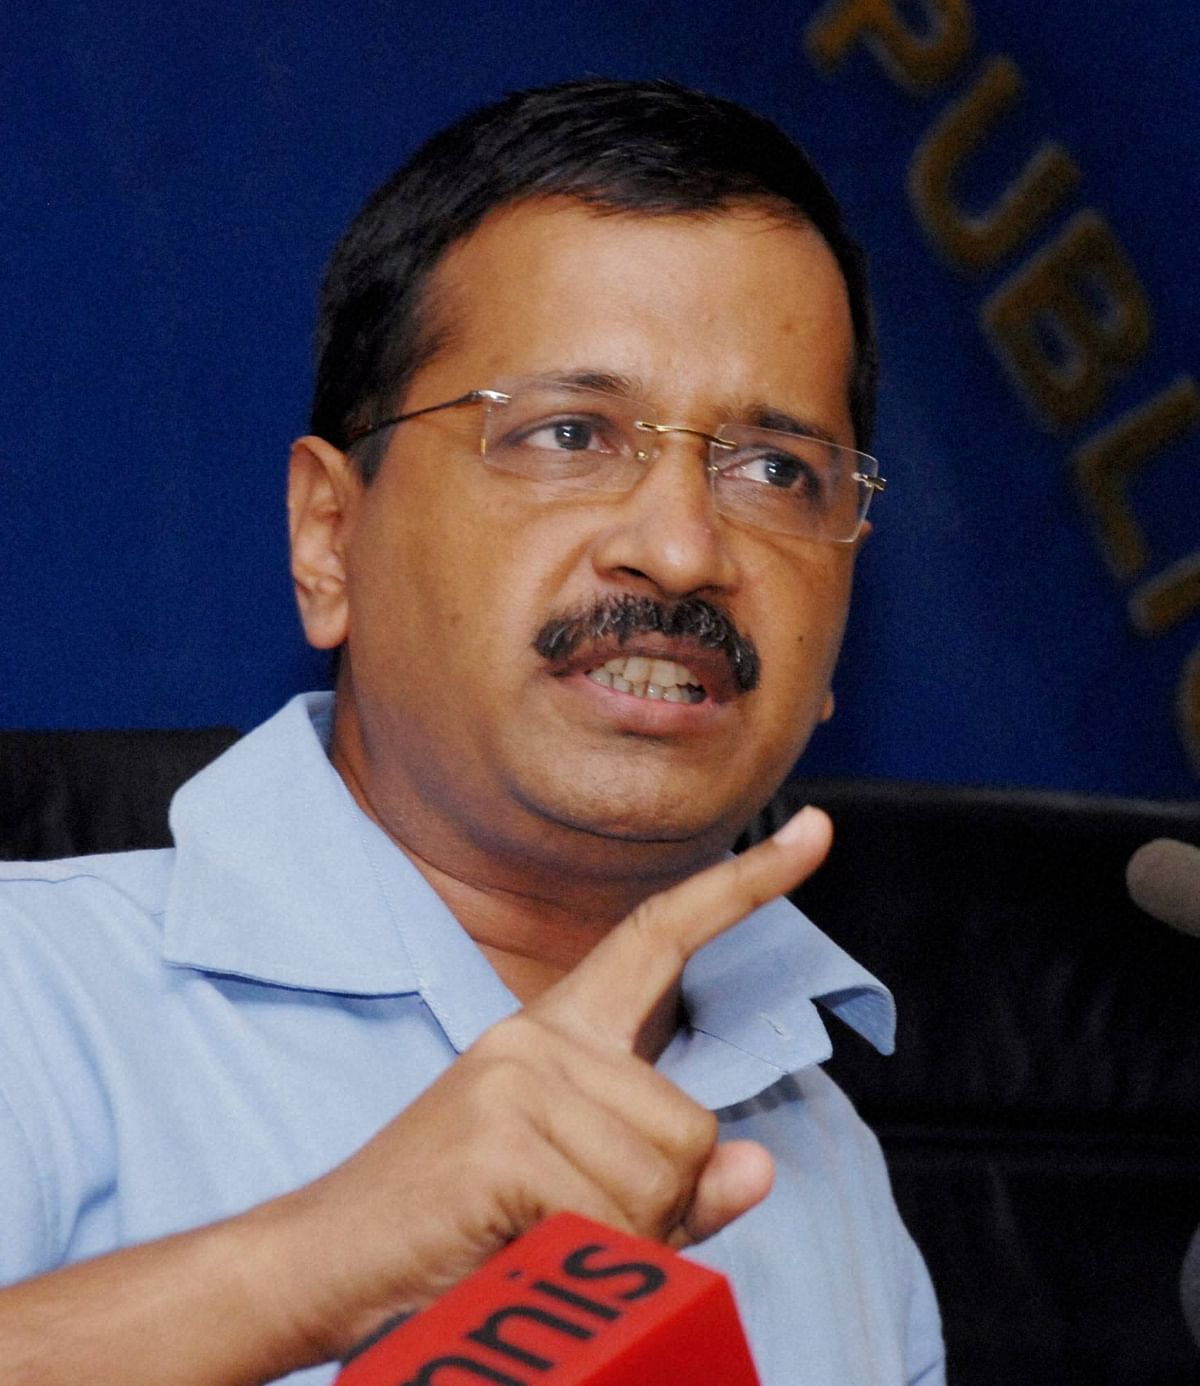 Arvind Kejriwal said a Commission of Inquiry will be set up within a week to examine issues relating to women's safety. (Photo: PTI)